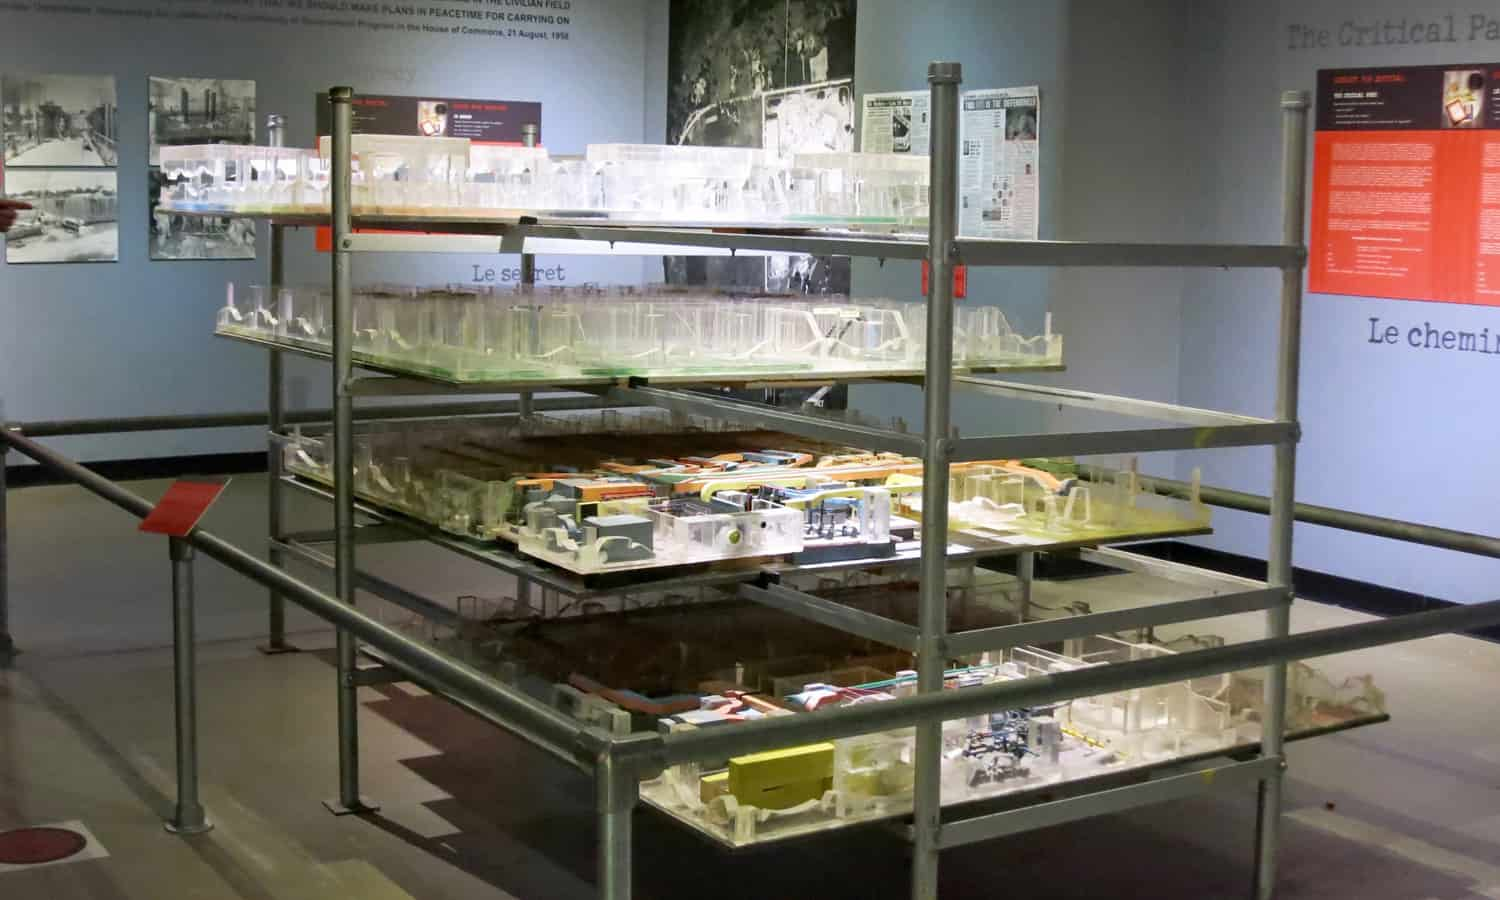 Model of the Diefenbunker and its multiple underground levels